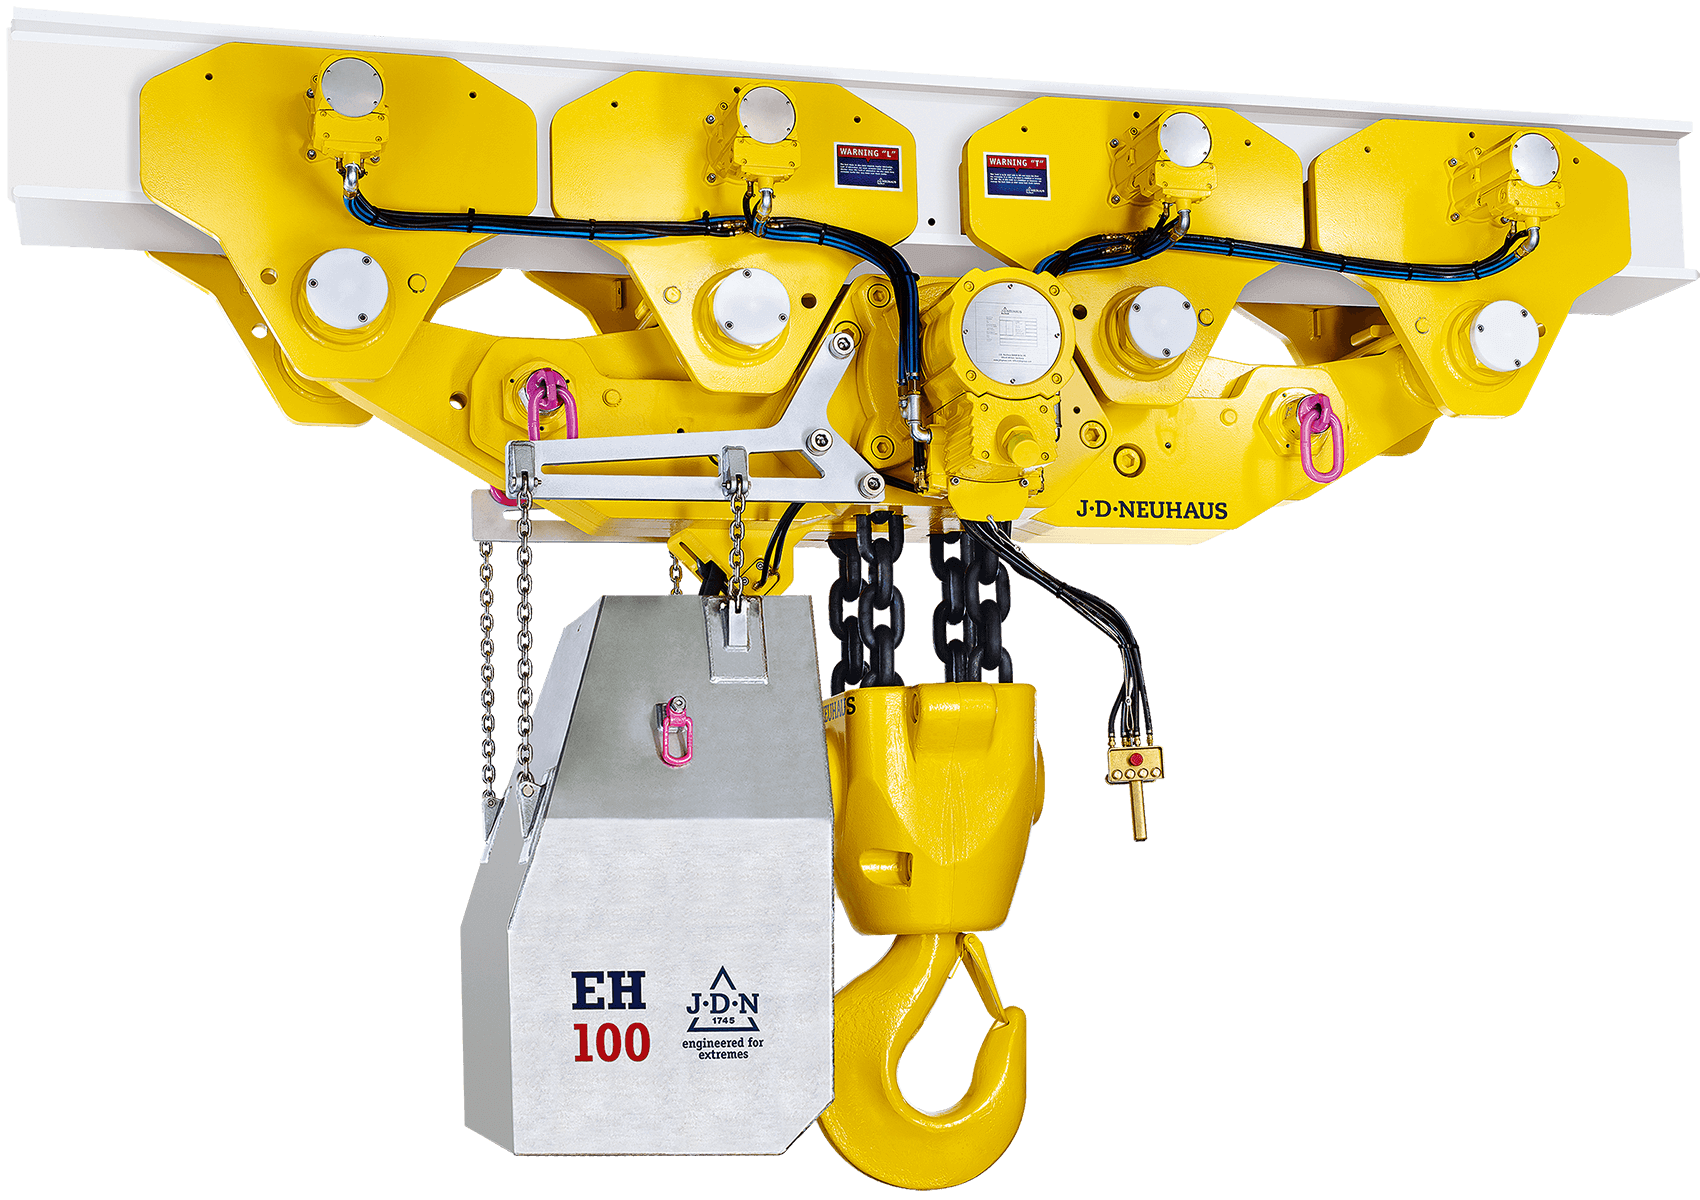 JDN Monorail Air Hoist